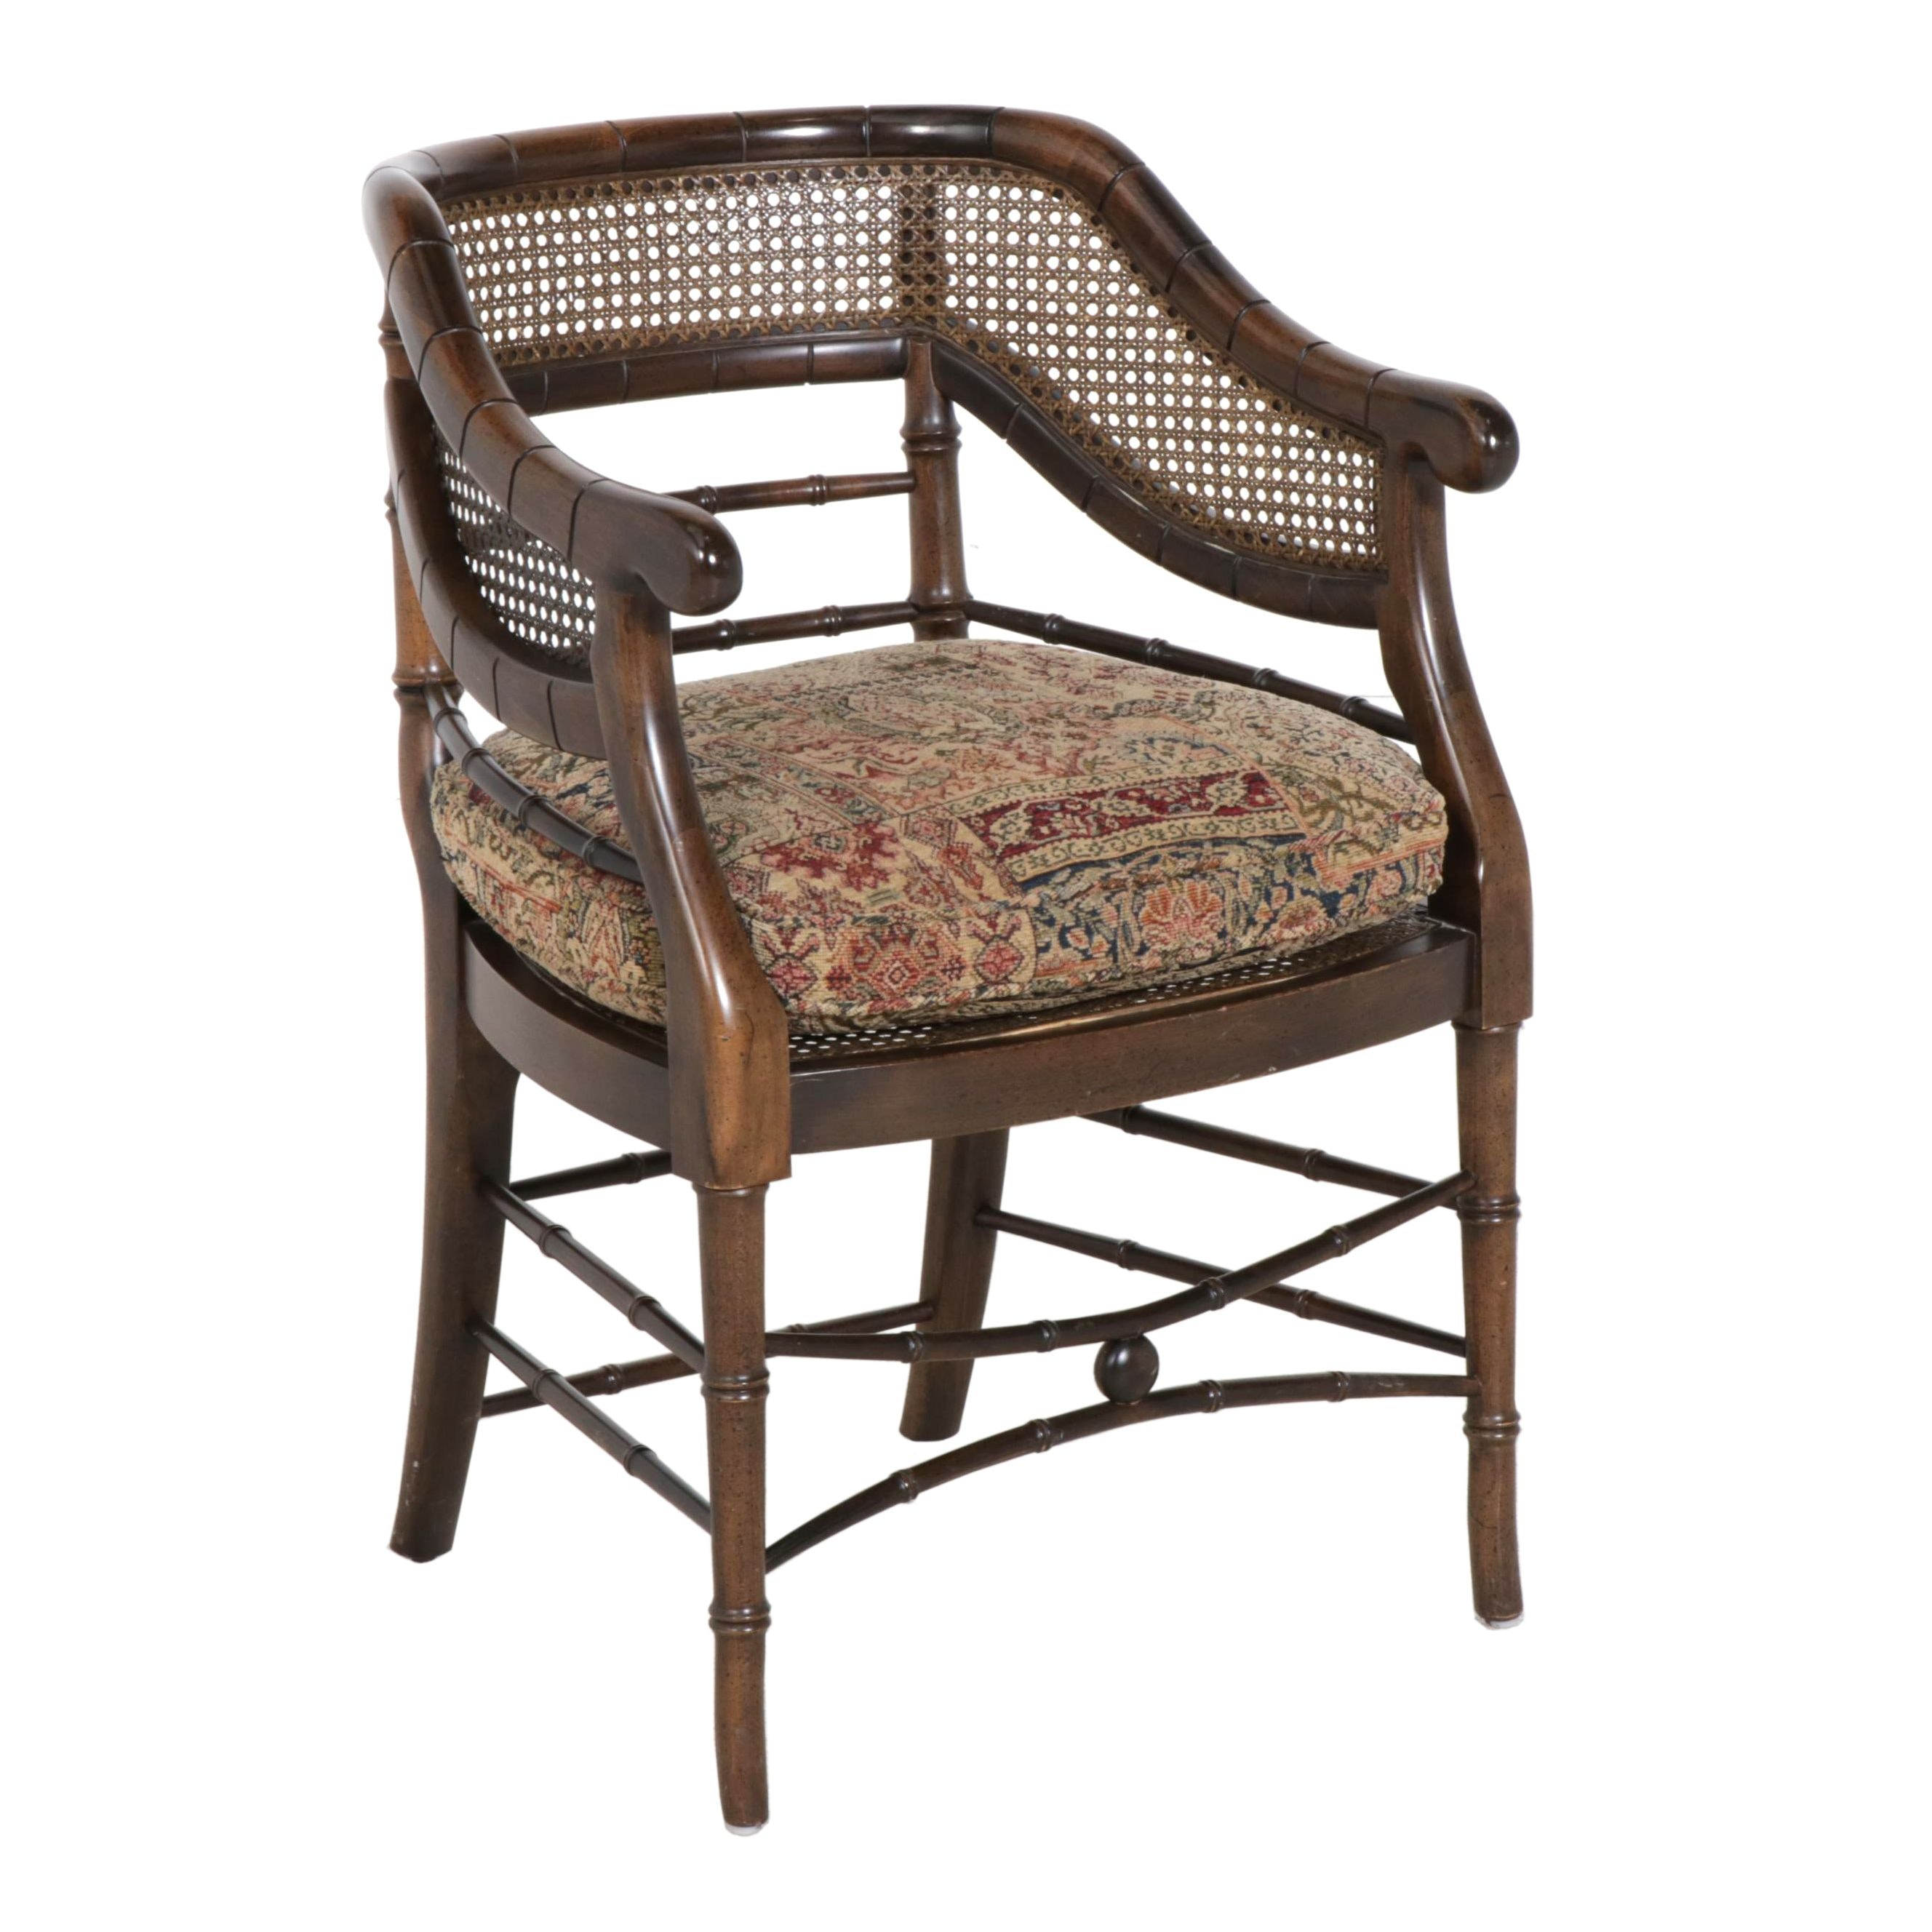 Regency Style Wood and Cane Armchair with Fabric Upholstered Cushion, 20th C.